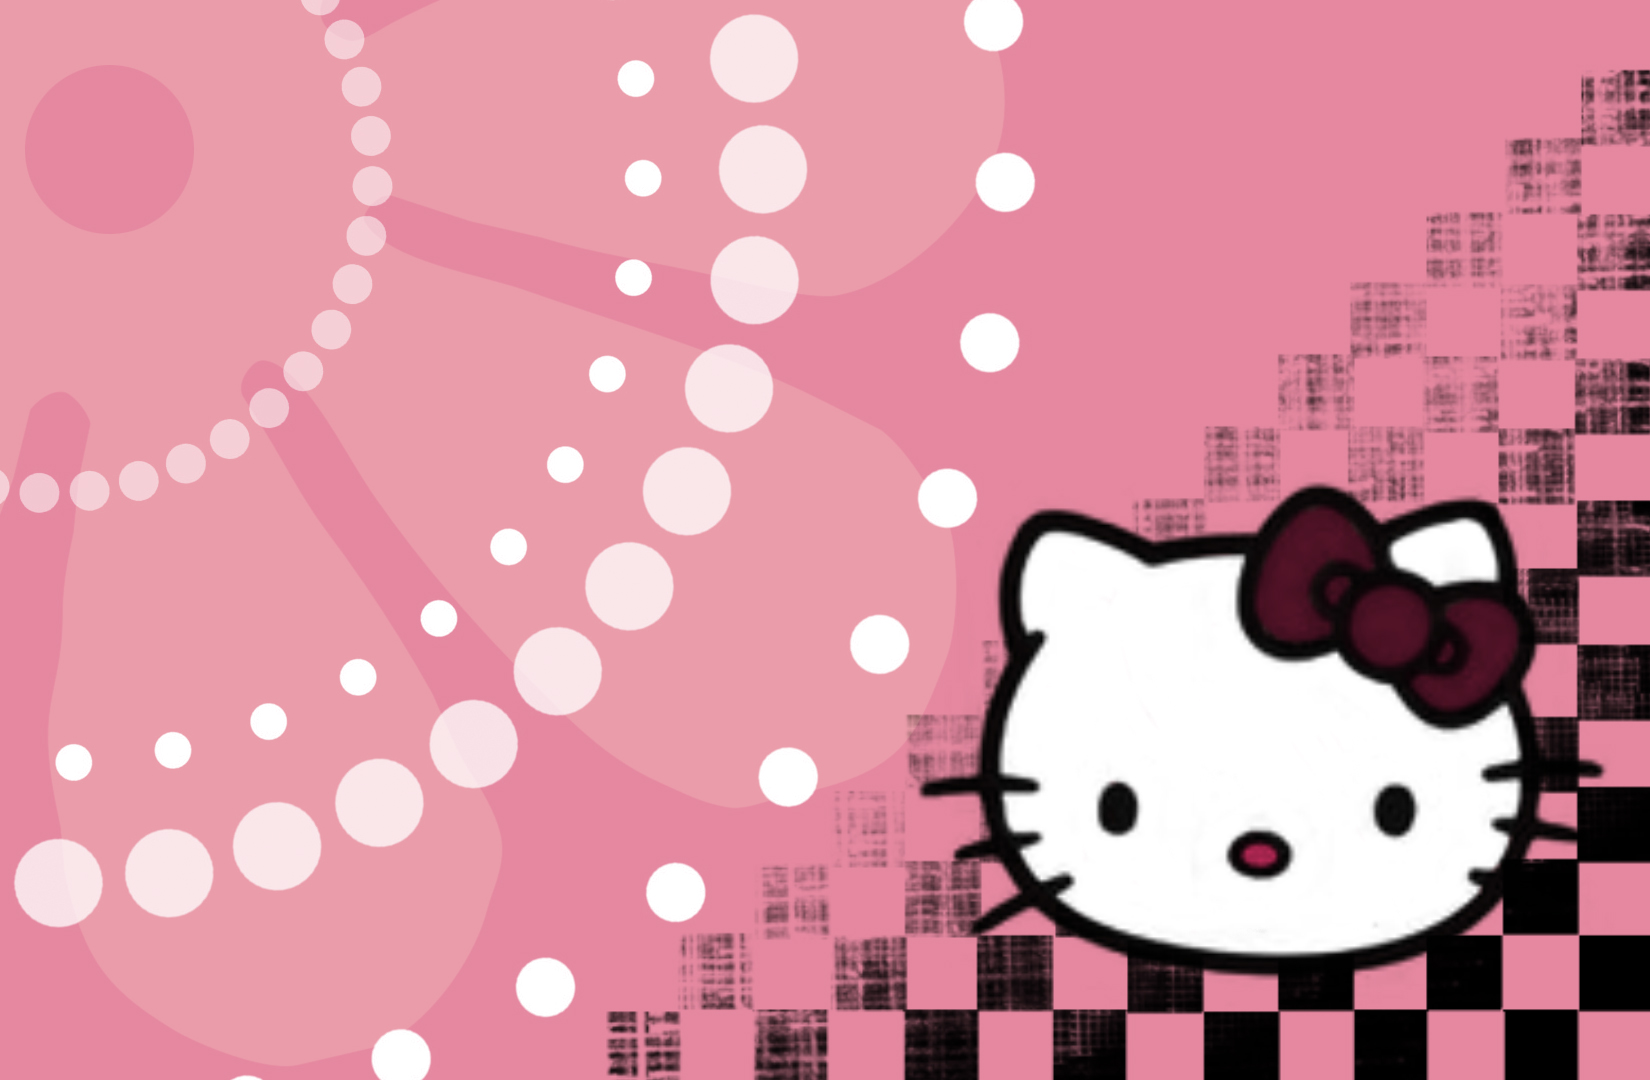 download Hello Kitty Wallpaper Desktop Background [1650x1080 1650x1080